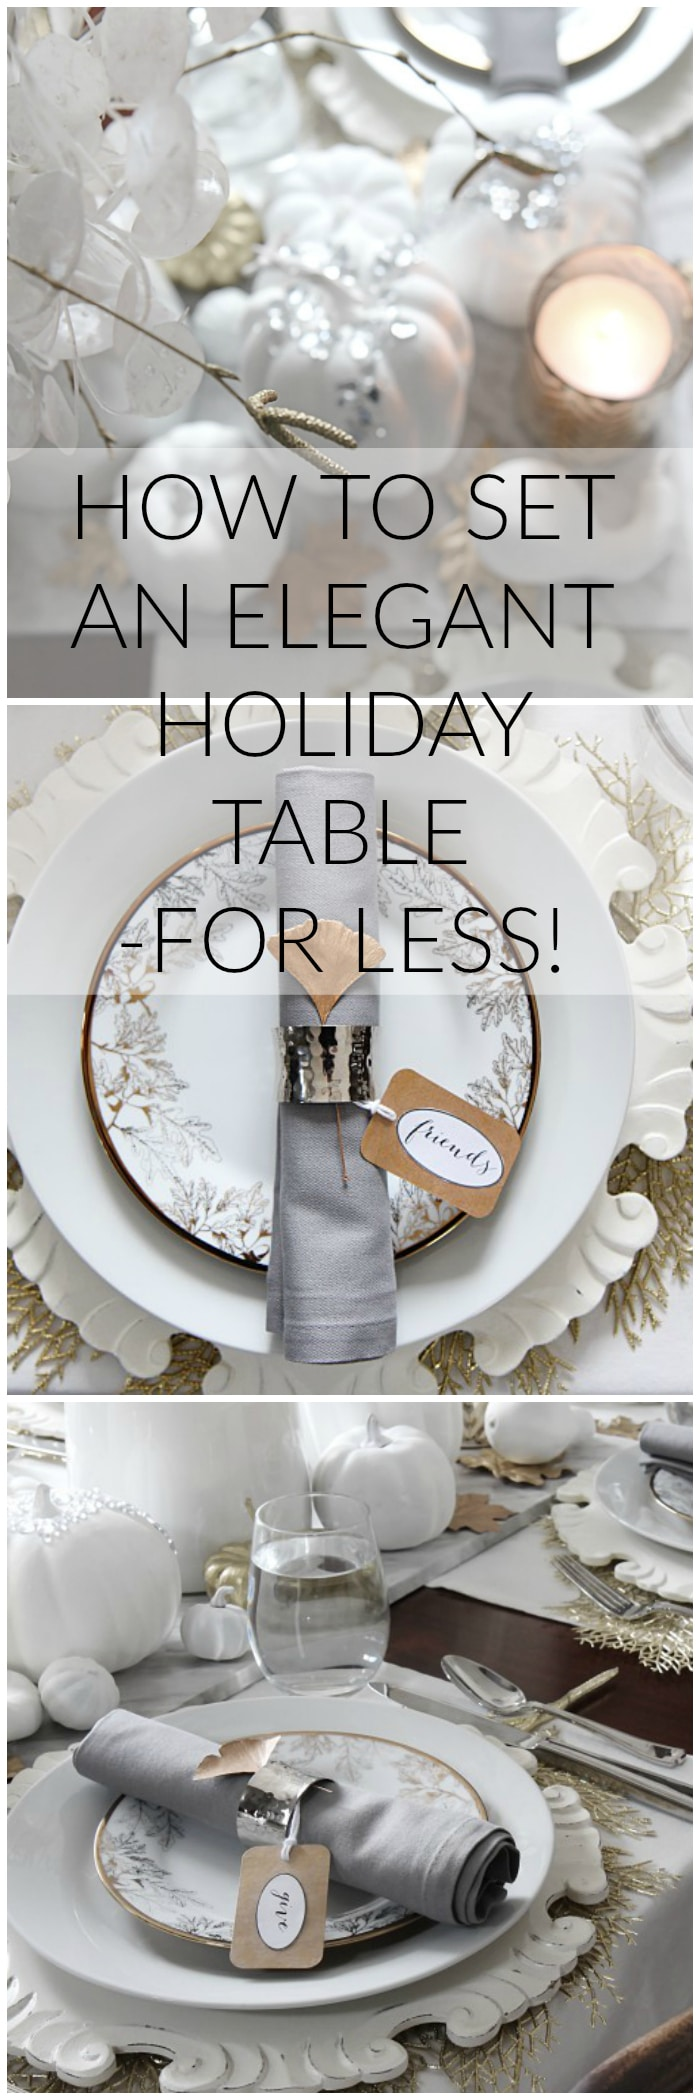 Learn how to set an elegant table for the holidays for less! See these budget friendly Thanksgiving dinner tablescape ideas for a memorable family get together or holiday dinner party. #thanksgiving #holiday #table #tabledecor #tablescape #placesetting #party #entertaining